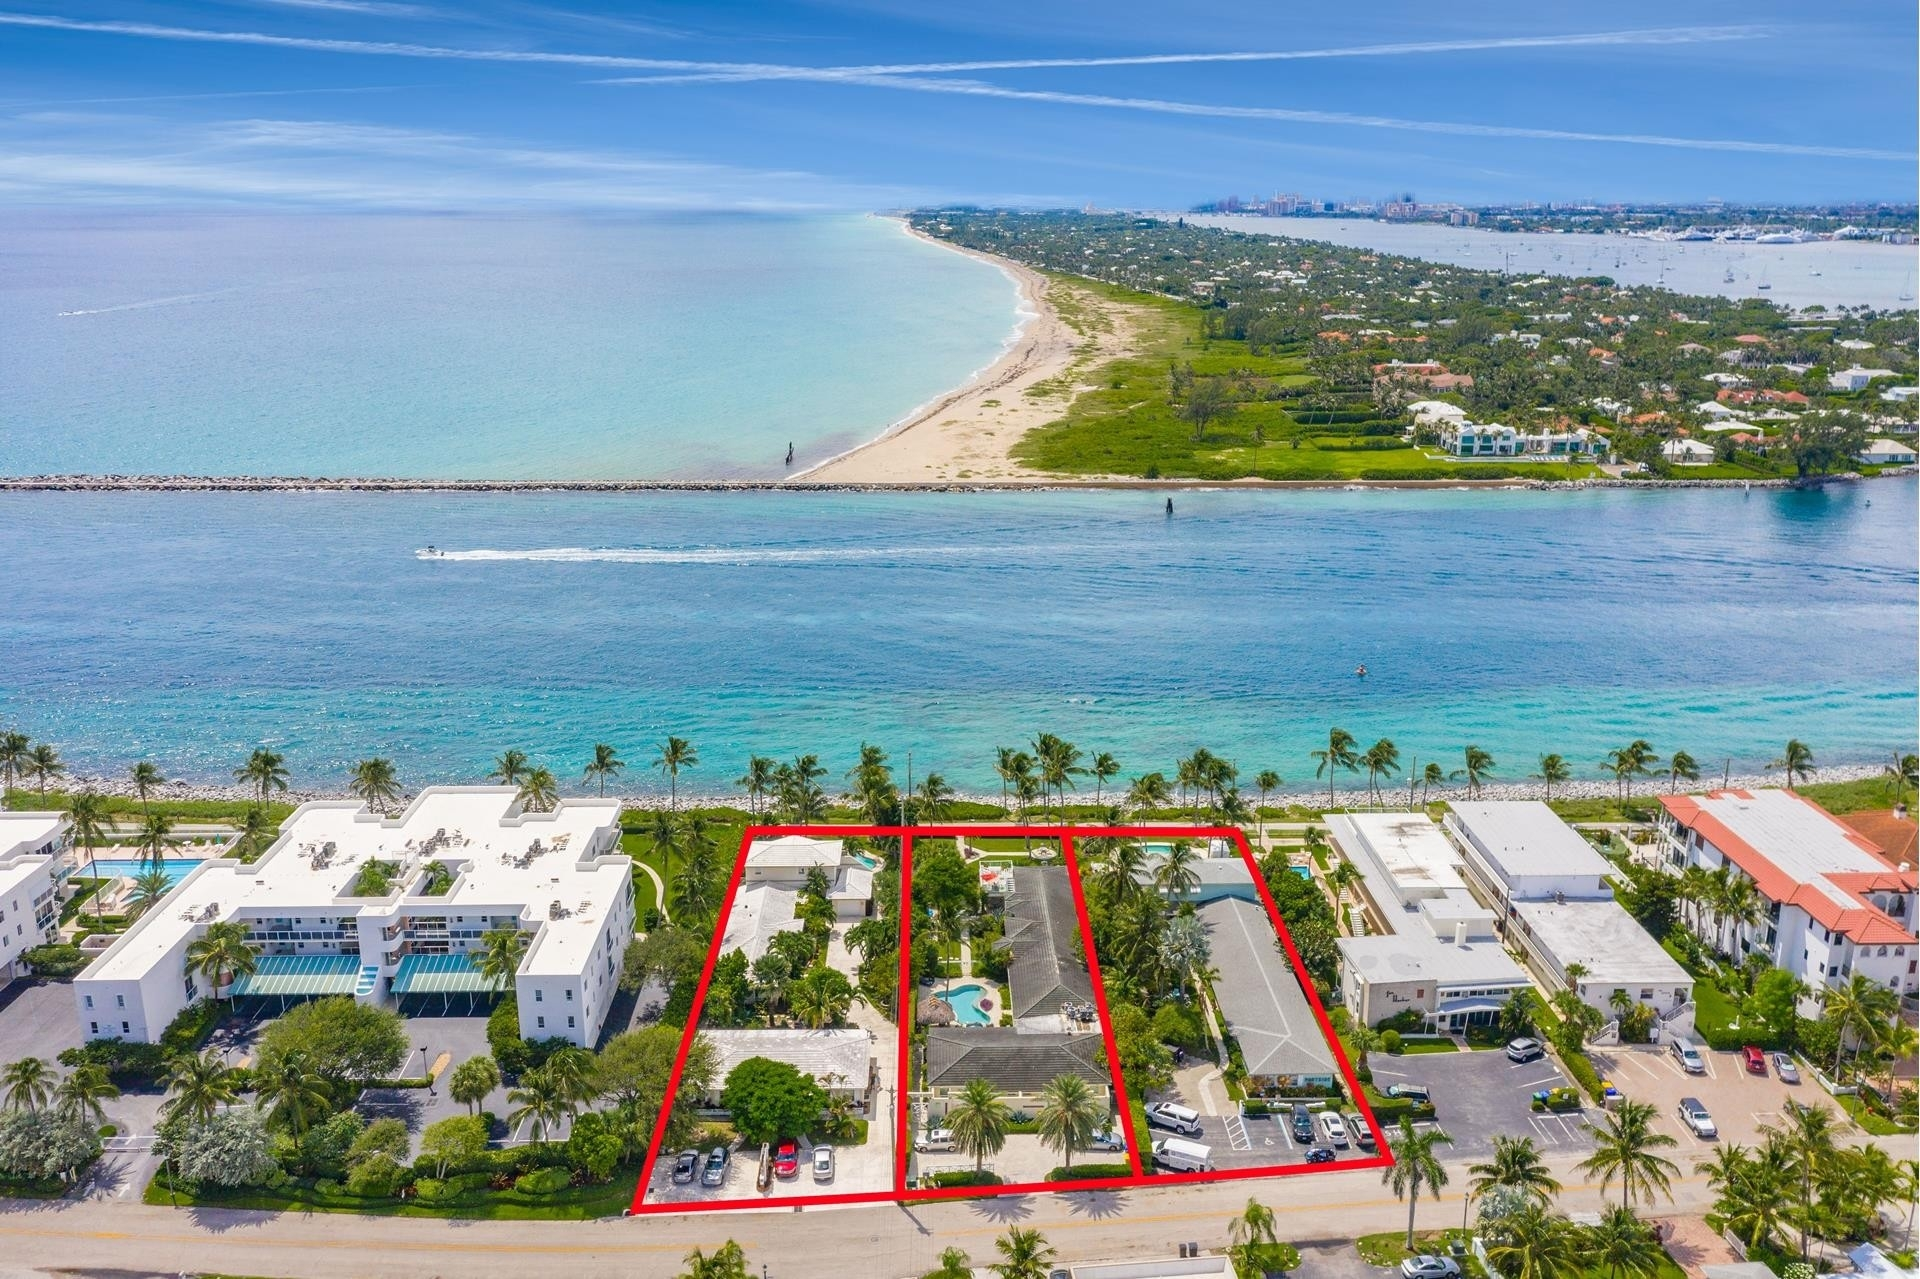 Condominium pour l Vente à 150 Inlet 1 Way, Ph Palm Beach Shores, FL 33404